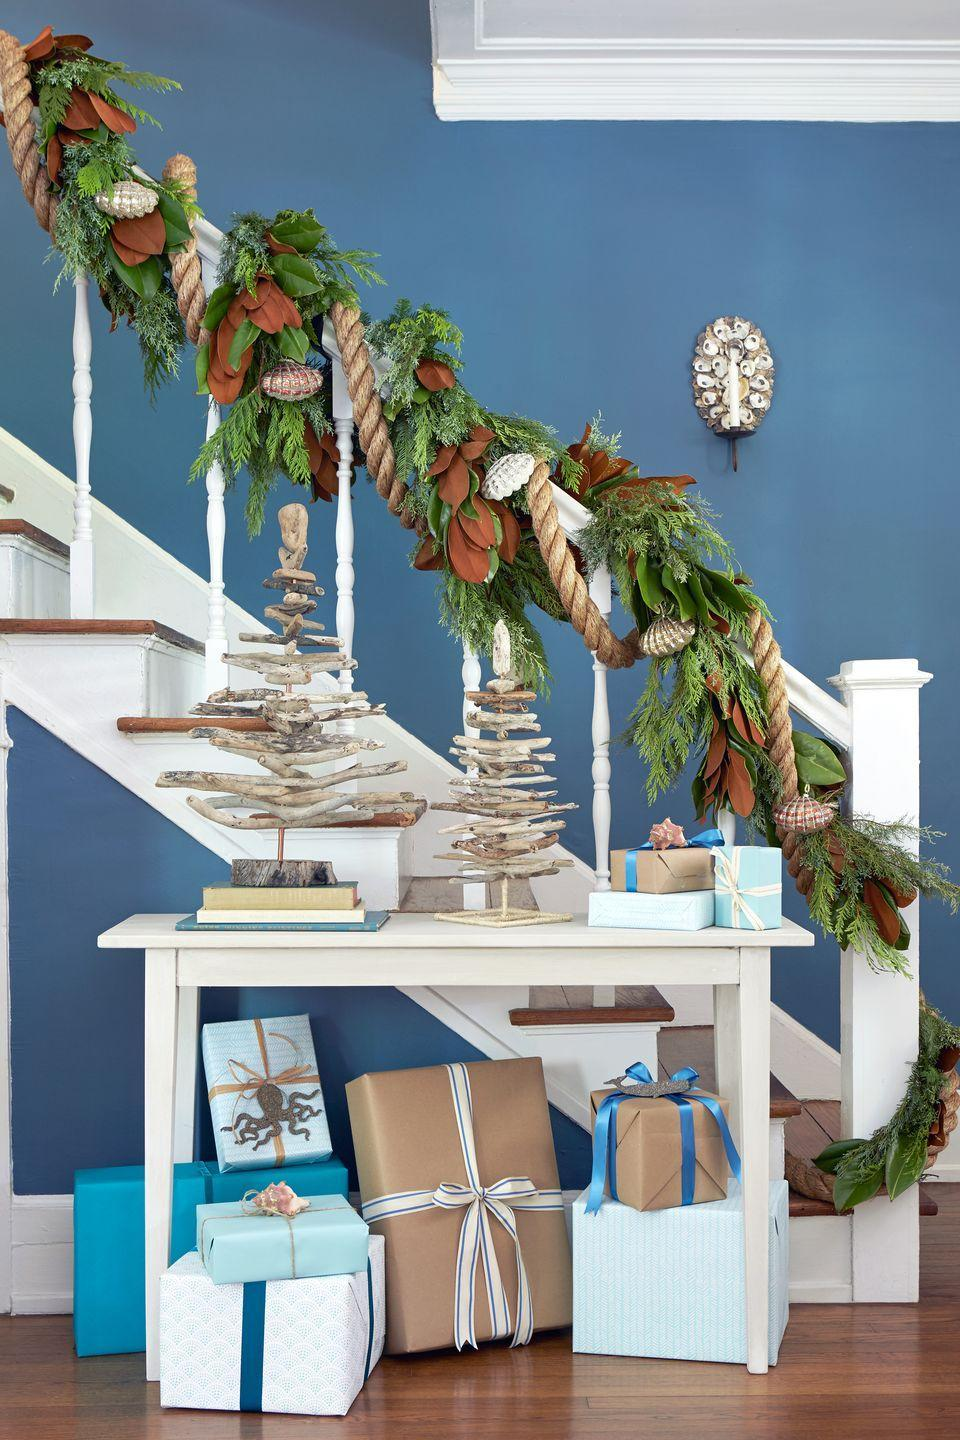 """<p>Salvaged tabletop driftwood trees, discarded shells affixed to a mirrored, candlelit sconce, and a nautical garland add festive touches to this this <a href=""""https://www.countryliving.com/home-design/decorating-ideas/g2179/country-christmas-decorating-ideas/#slide-22"""" rel=""""nofollow noopener"""" target=""""_blank"""" data-ylk=""""slk:easy-breezy stairwell"""" class=""""link rapid-noclick-resp"""">easy-breezy stairwell</a>.</p><p><a class=""""link rapid-noclick-resp"""" href=""""https://www.amazon.com/s/ref=nb_sb_noss?url=search-alias%3Dgarden&field-keywords=christmas+garland&tag=syn-yahoo-20&ascsubtag=%5Bartid%7C10050.g.1247%5Bsrc%7Cyahoo-us"""" rel=""""nofollow noopener"""" target=""""_blank"""" data-ylk=""""slk:SHOP GARLAND"""">SHOP GARLAND</a><br></p>"""